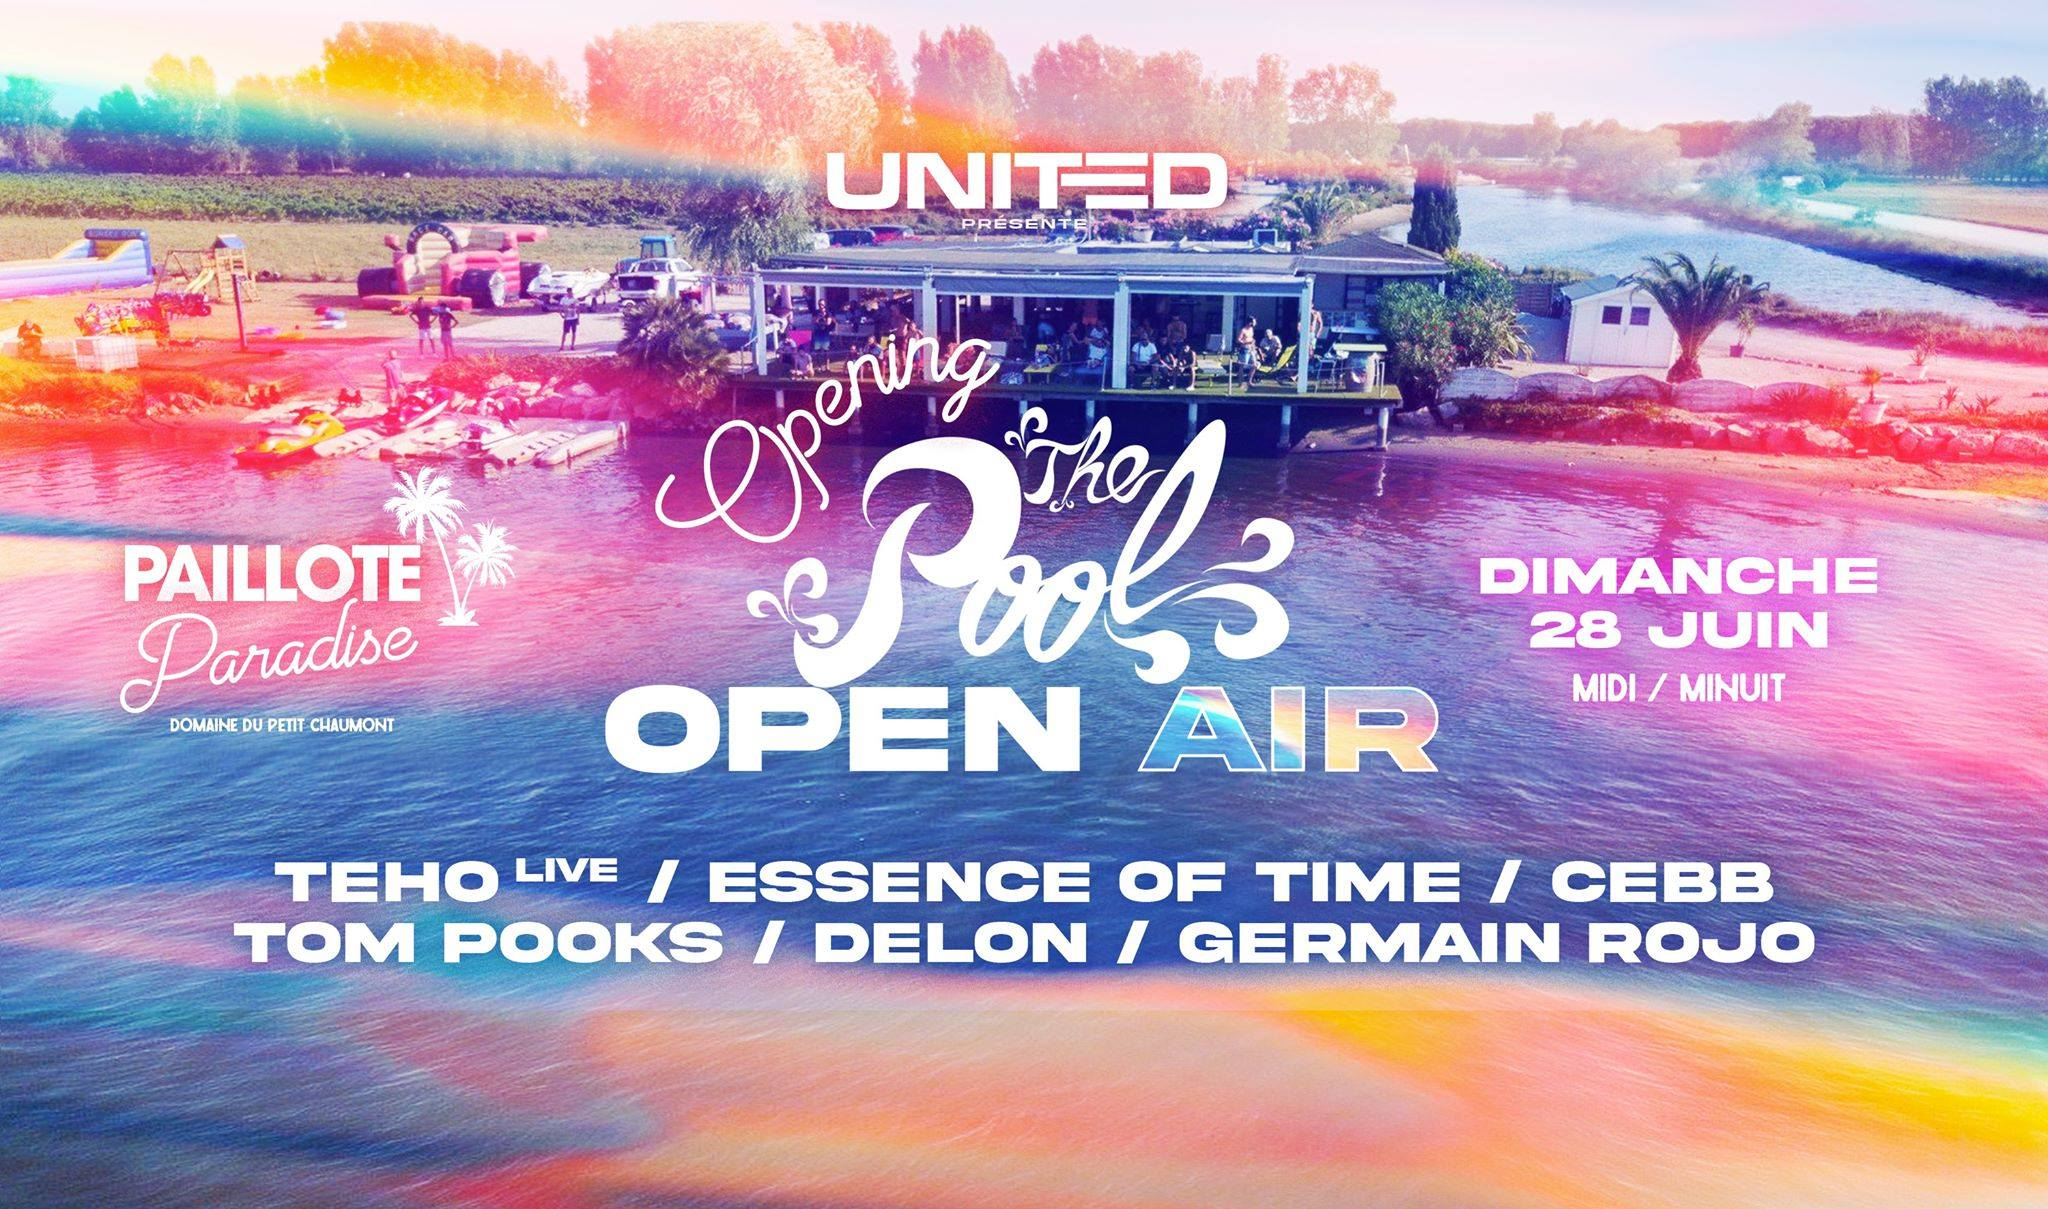 Opening the POOL OPEN AIR by United: Paillote Paradise